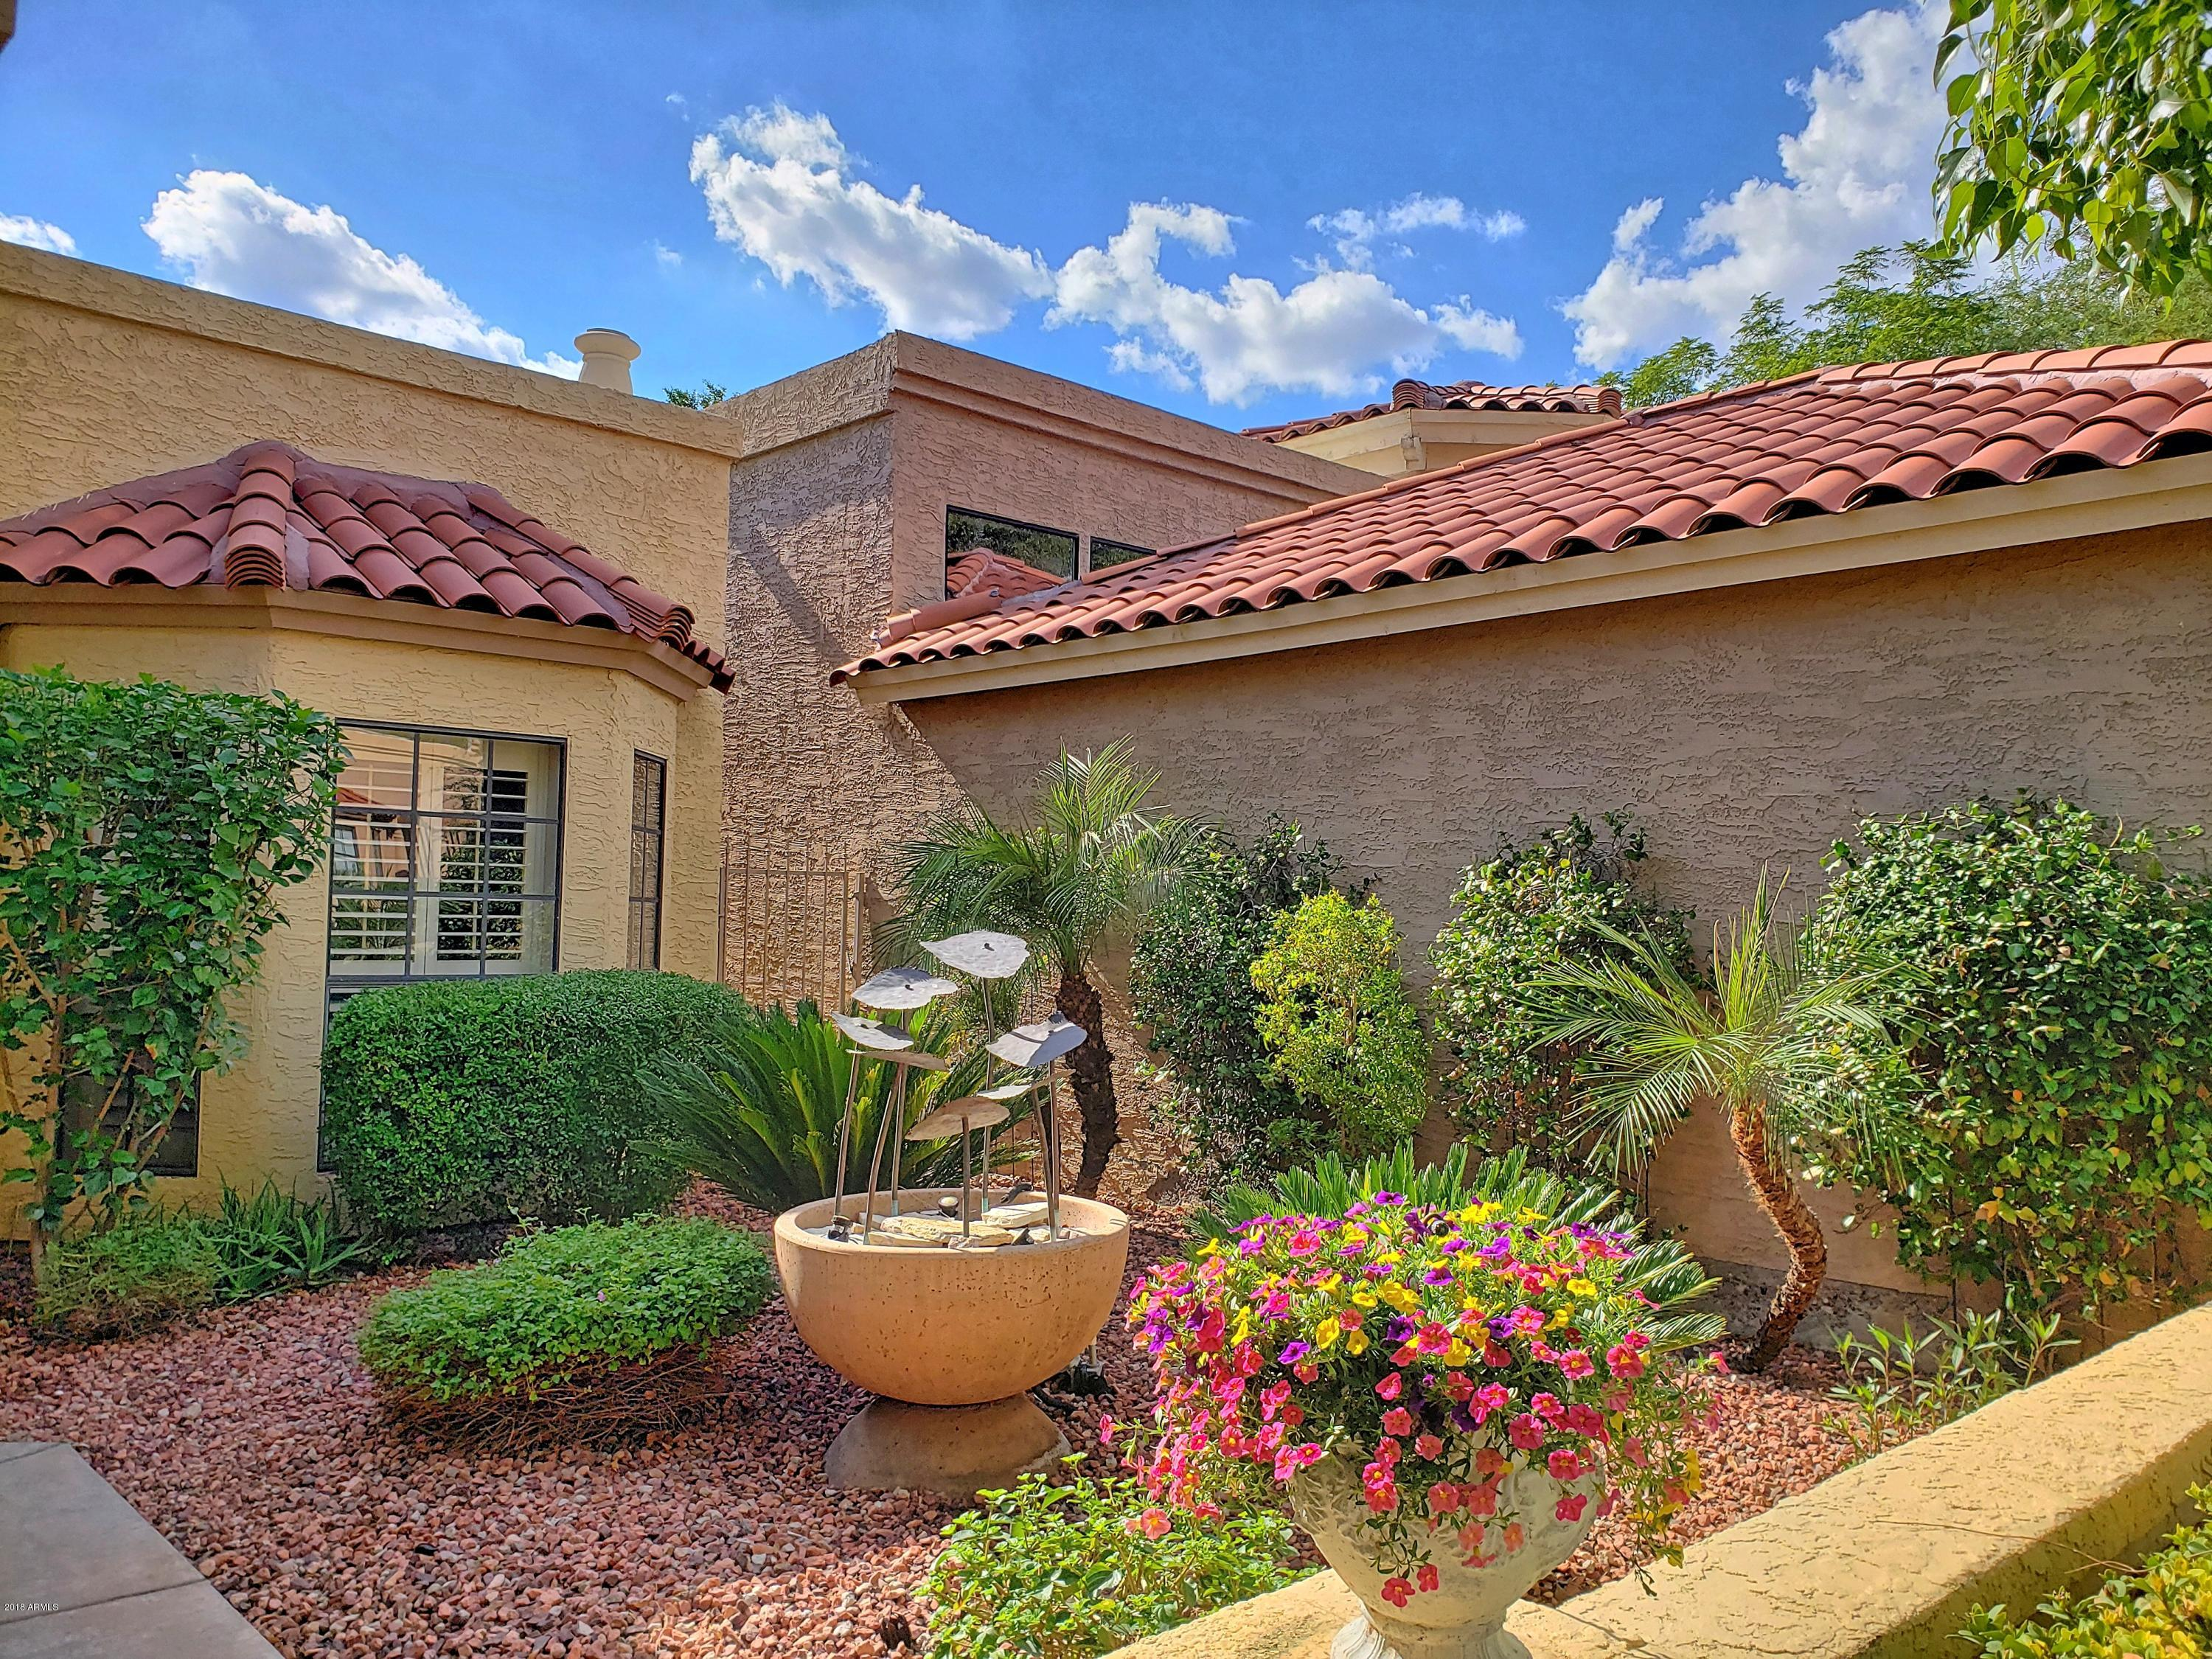 MLS 5831165 9460 N 106TH Place, Scottsdale, AZ 85258 Scottsdale AZ Scottsdale Ranch